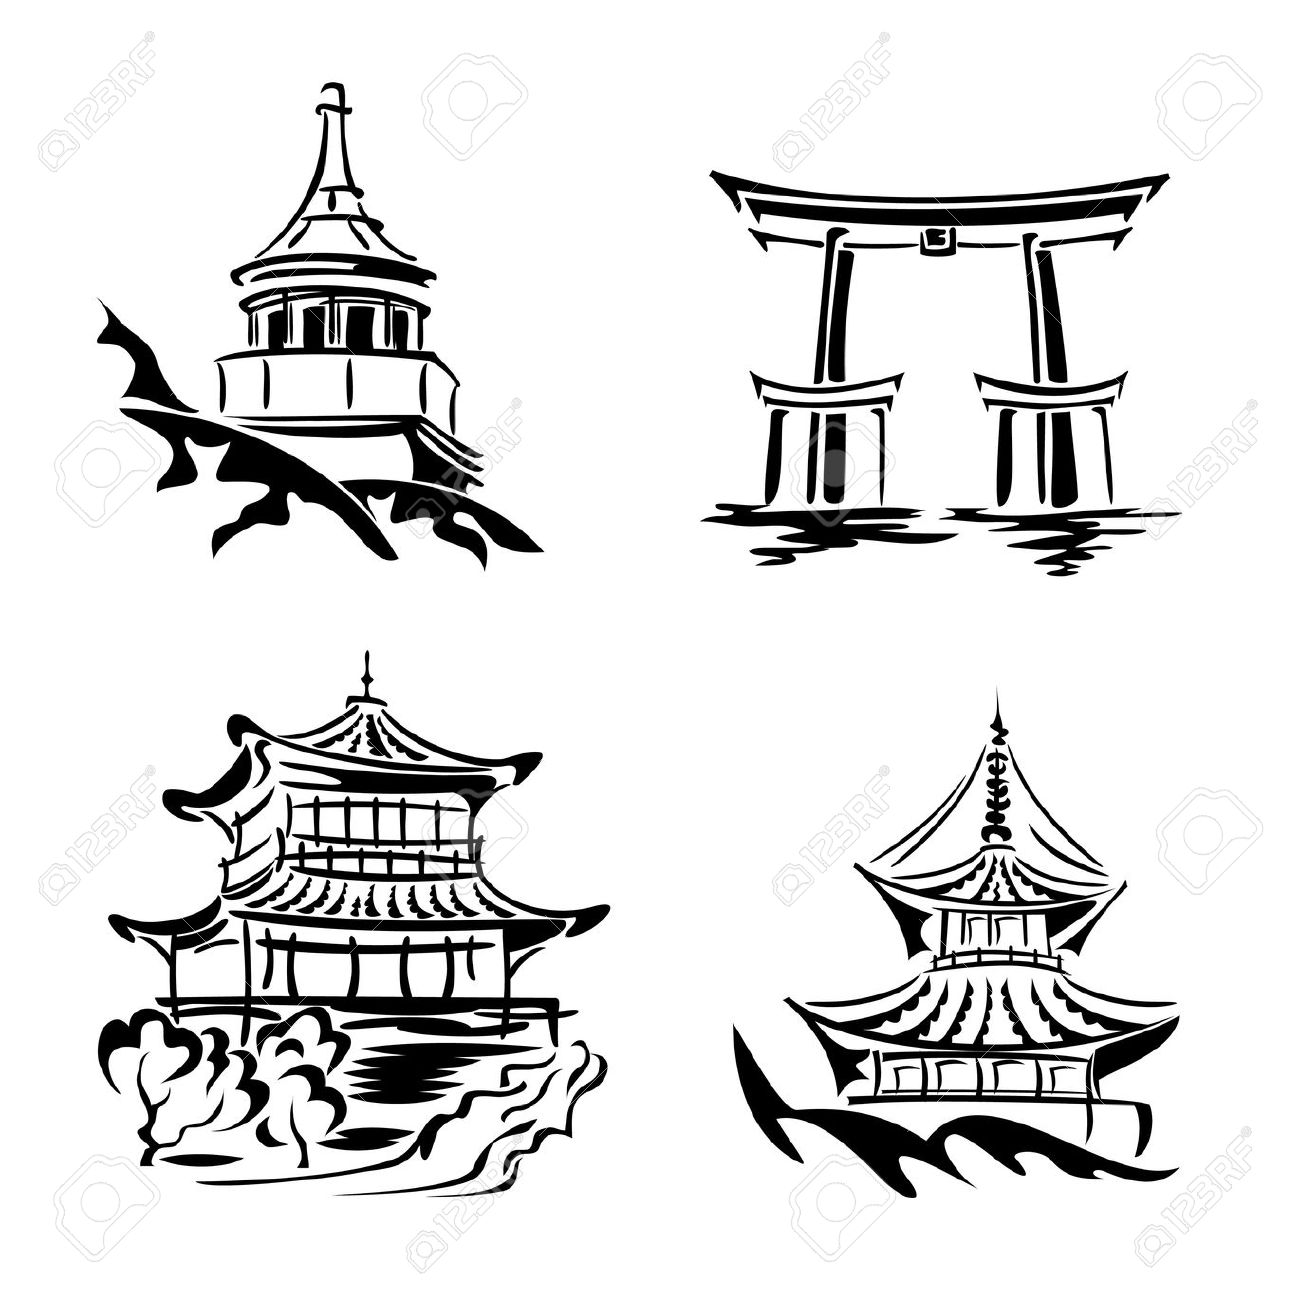 Black And White Images Asian Temples And Architecture Royalty Free.